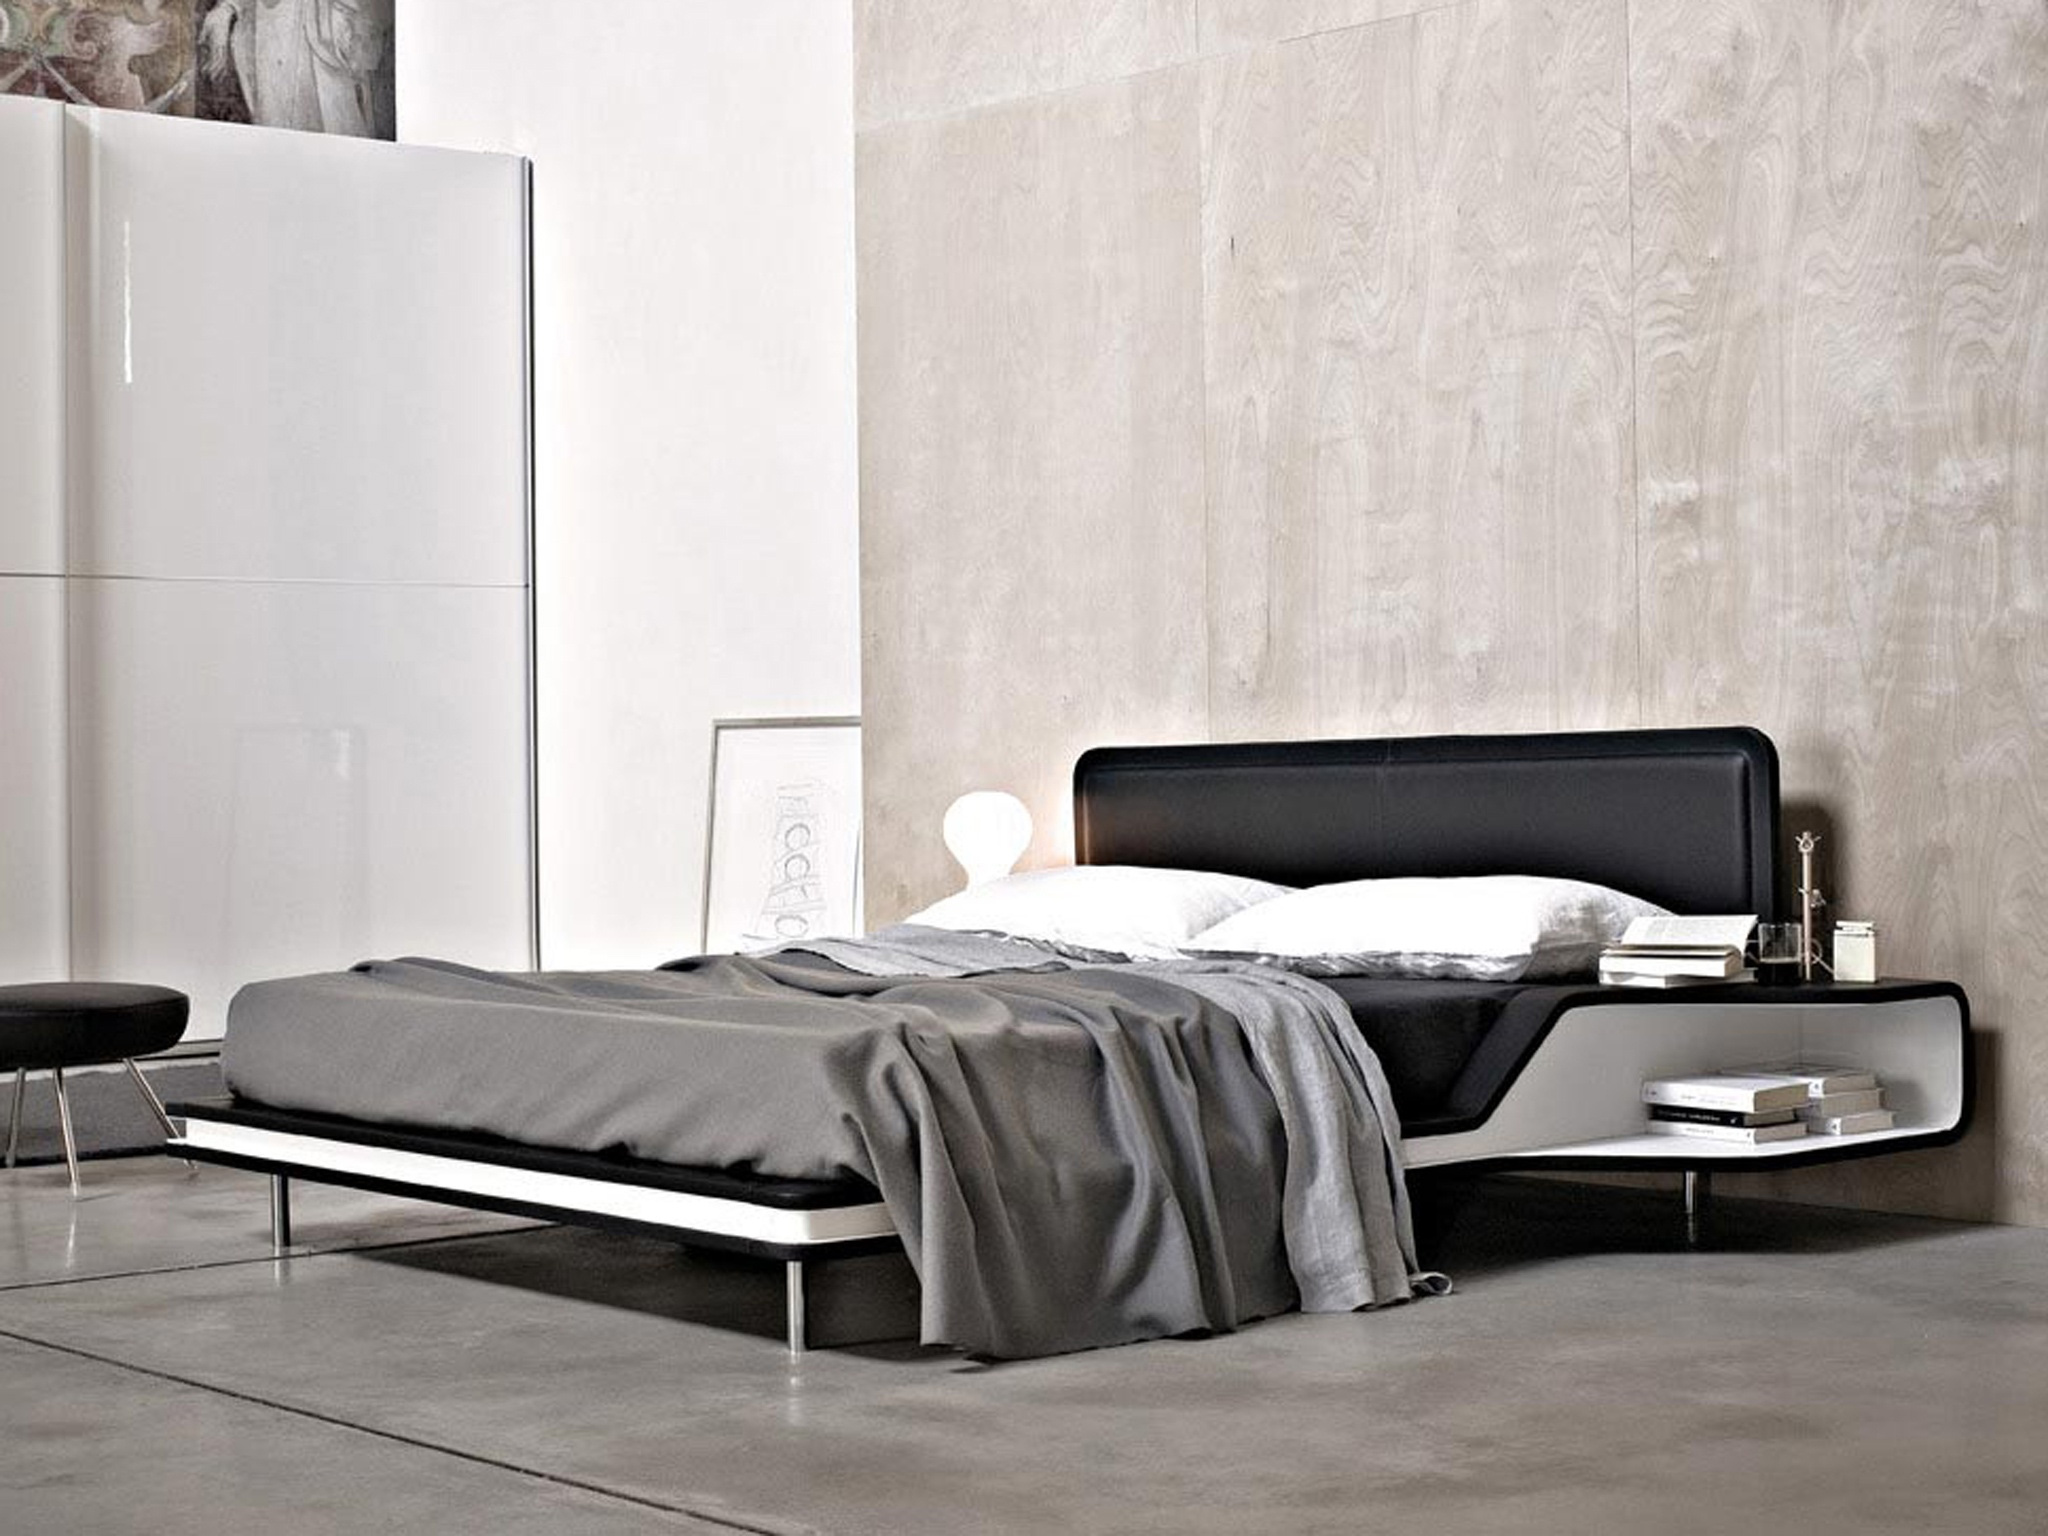 tete lit avec chevet. Black Bedroom Furniture Sets. Home Design Ideas